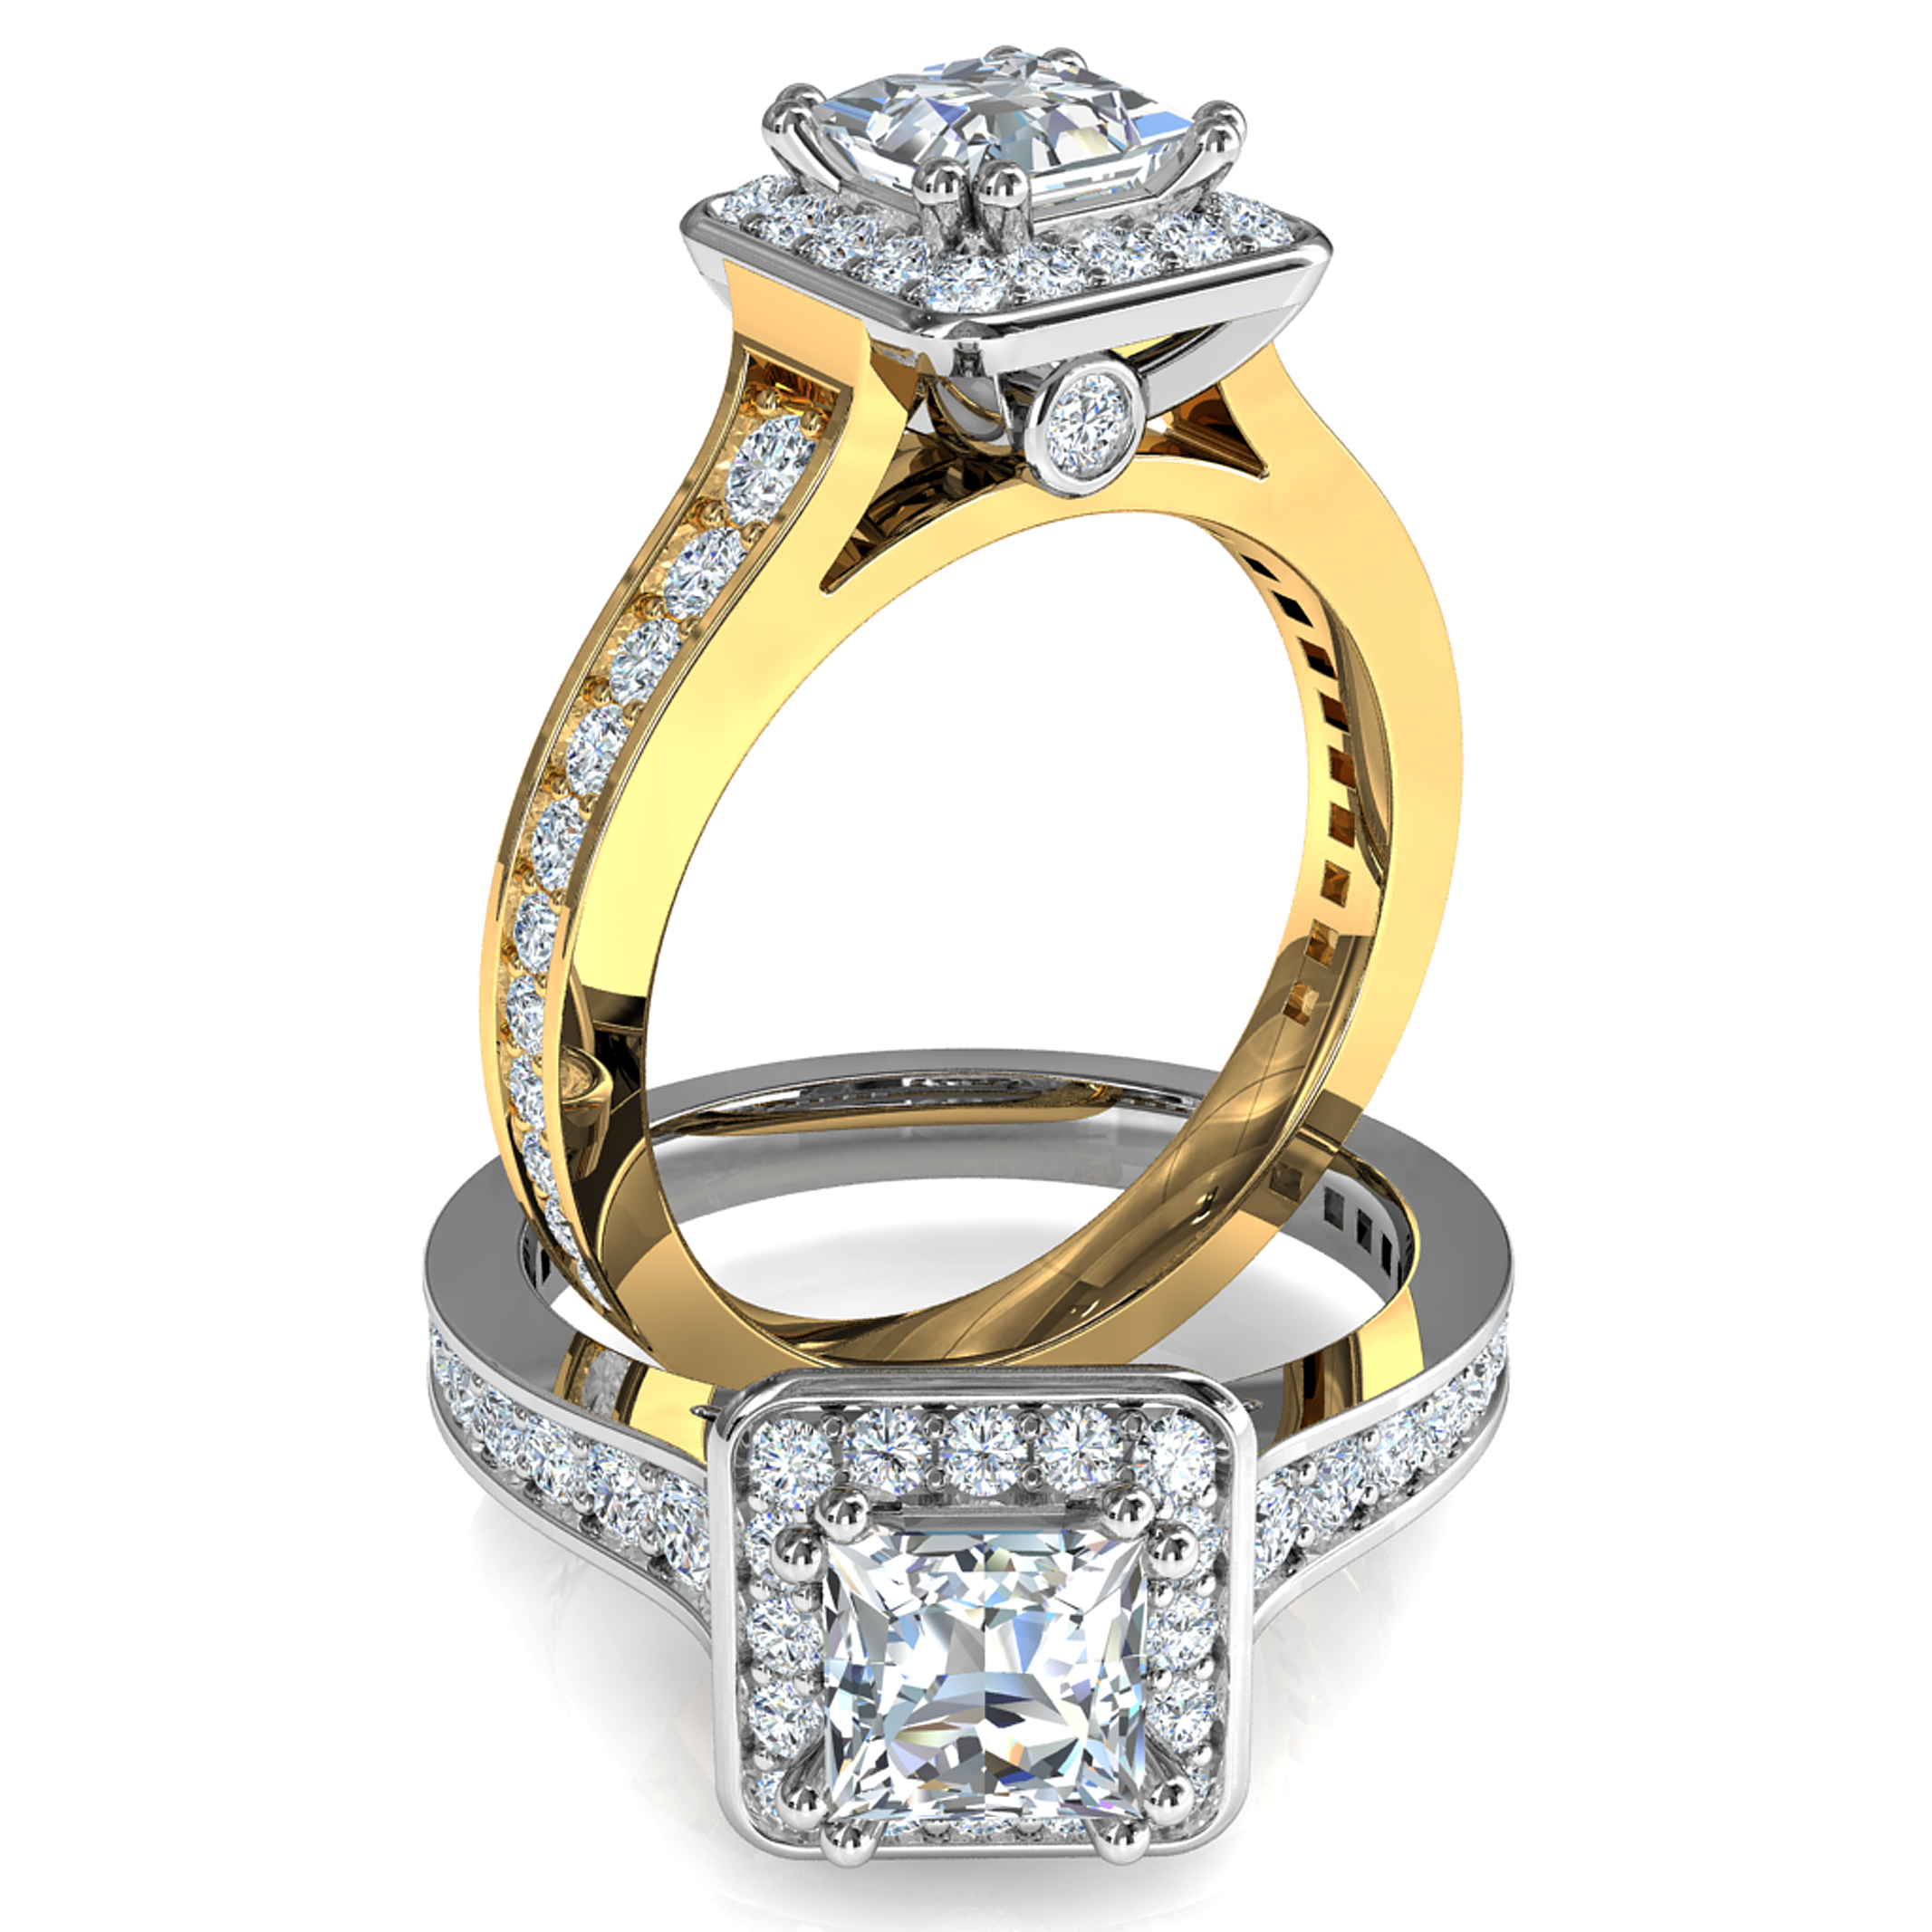 Princess Cut Halo Diamond Engagement Ring, 4 Double Claws Set in a Bead Set Halo on a Tapering Bead Set Band with Hidden Diamond Undersetting.